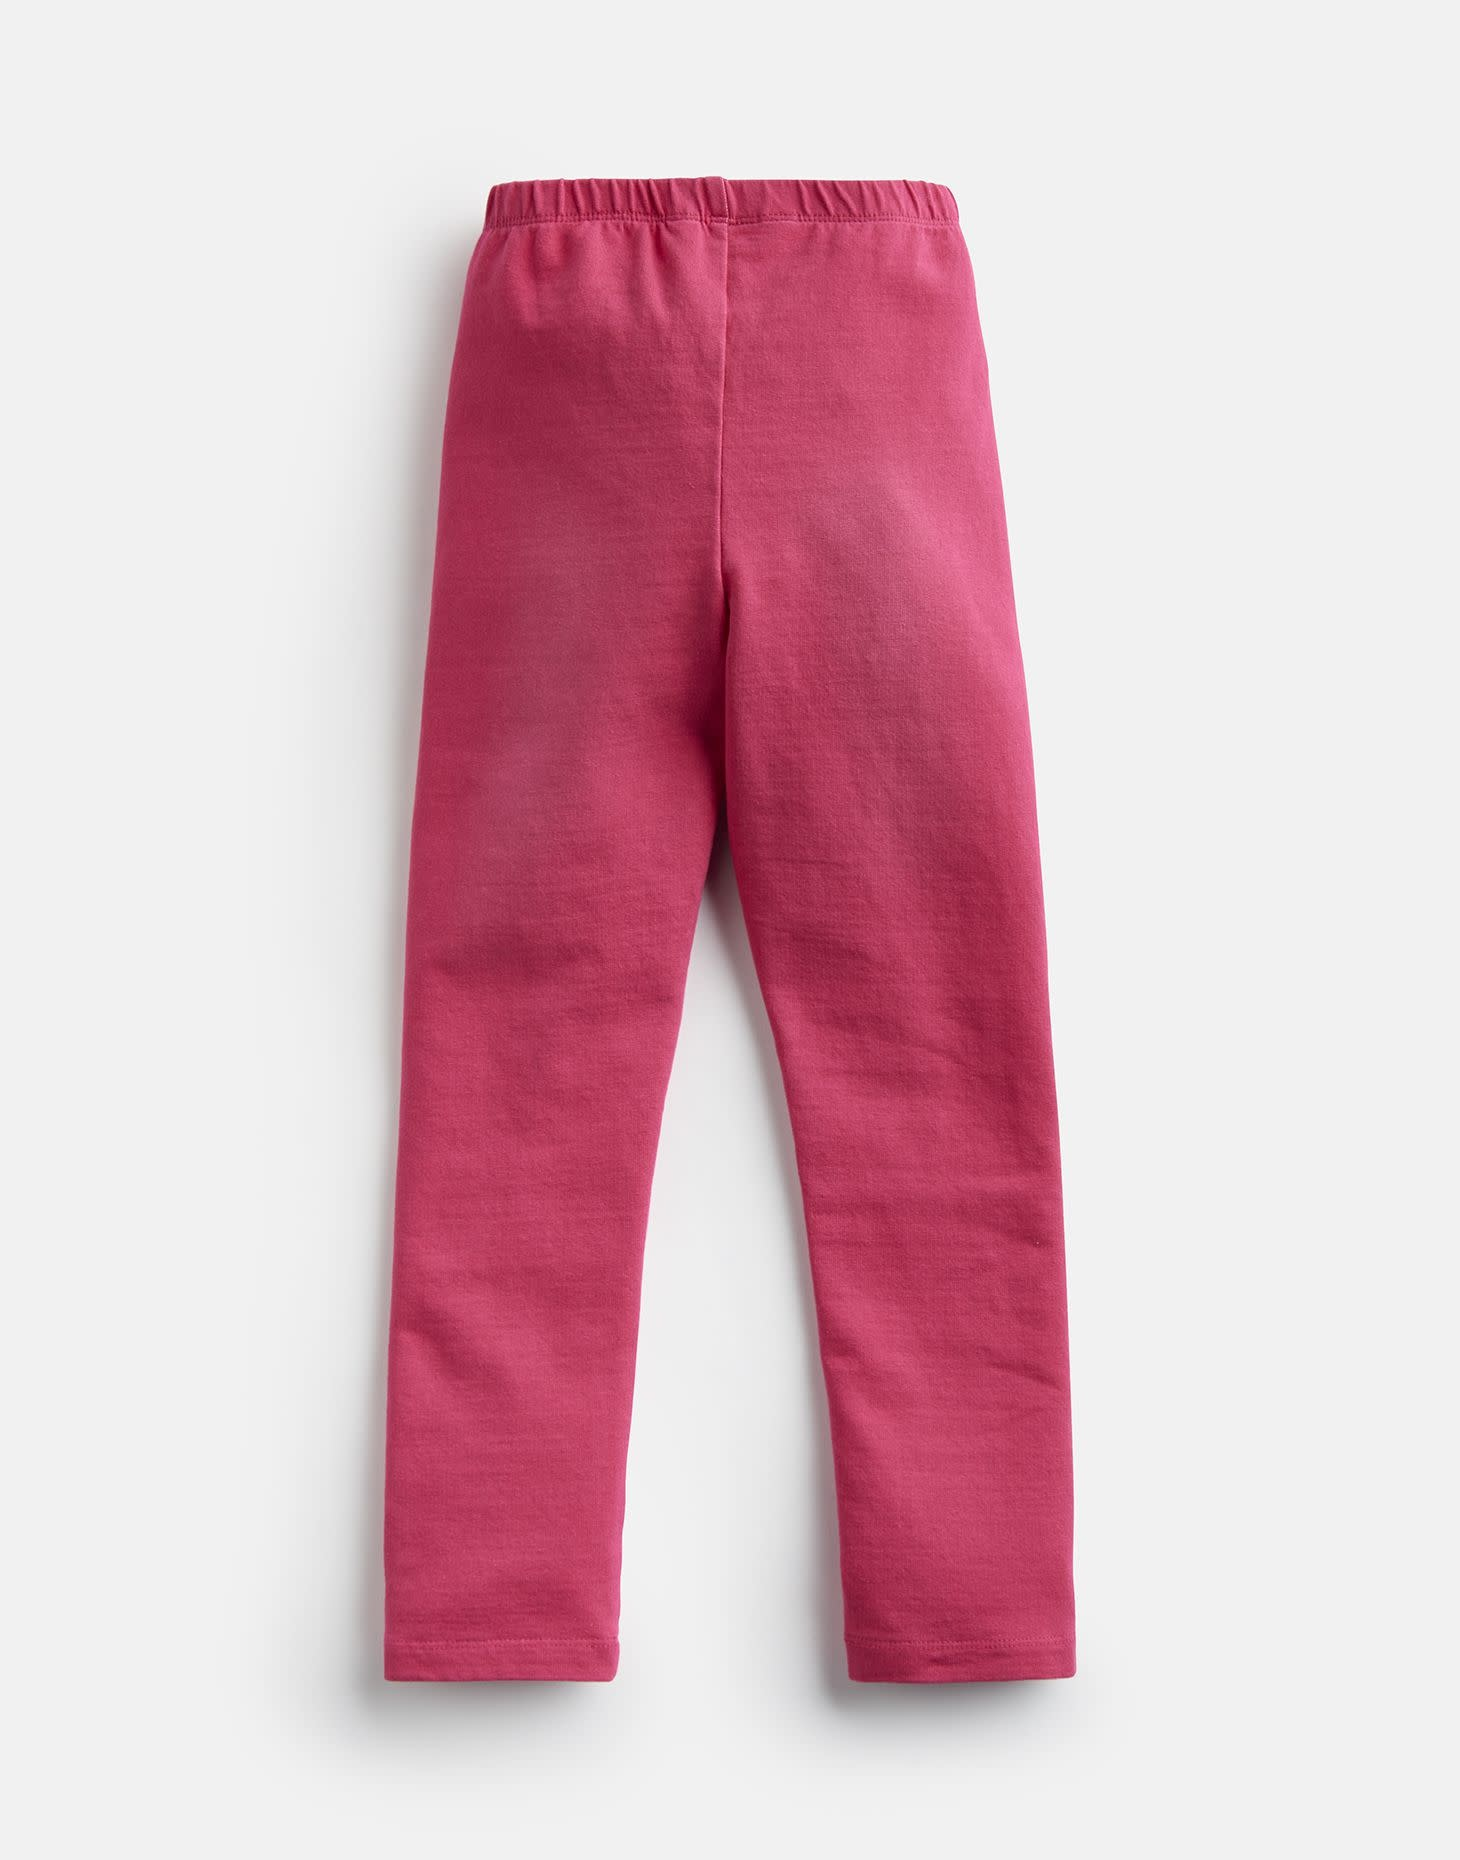 Joules Minnie Jersey Truly Pink Pull On Leggings